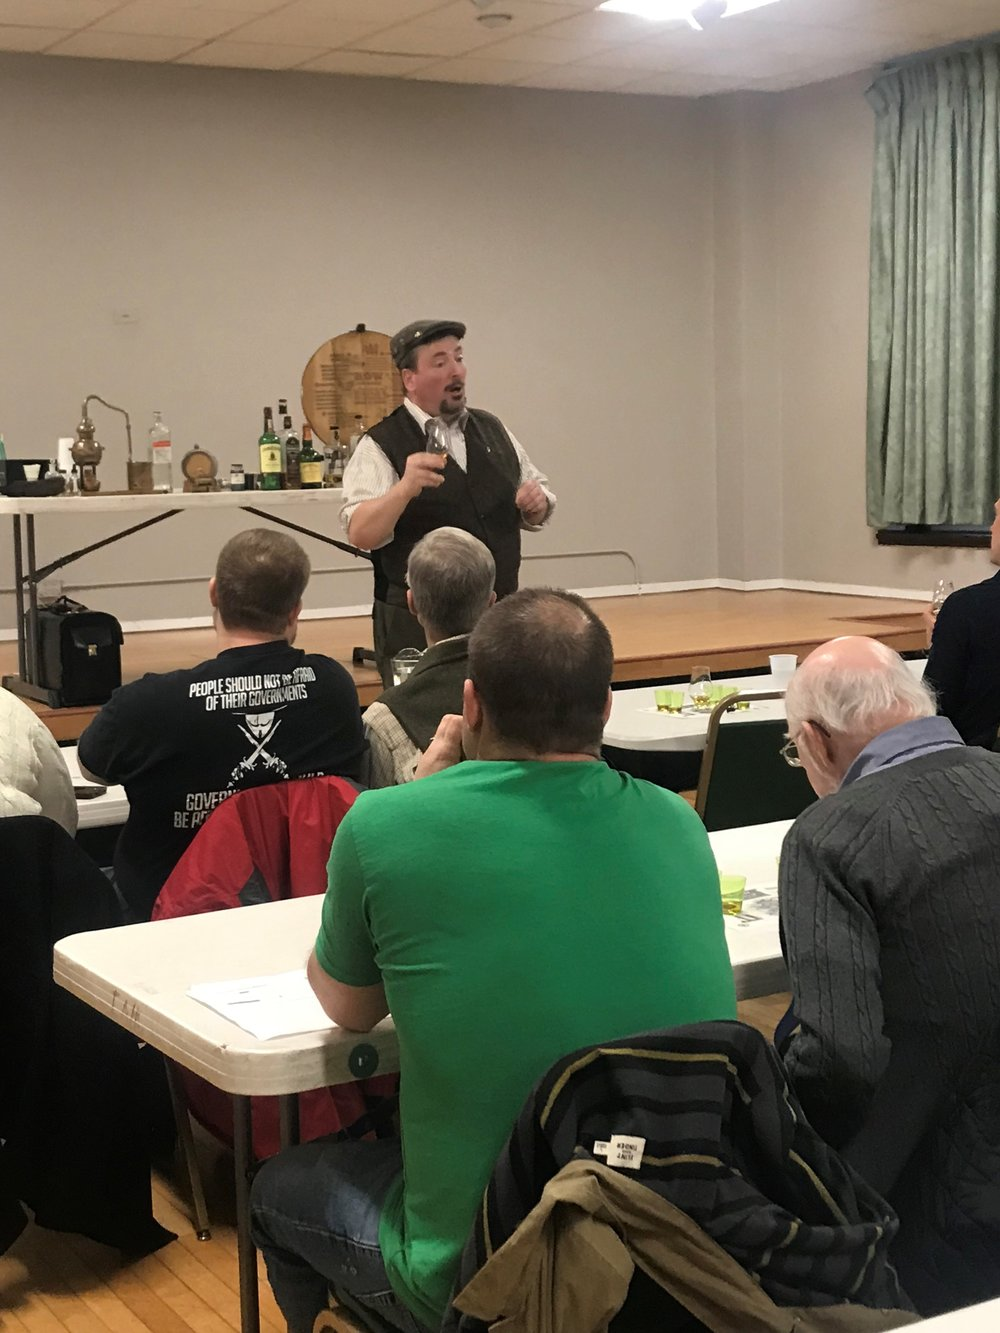 Whiskey enthusiast and historian Martin Duffy leads a class on the history, production and flavor of Irish Whiskey at the Irish American Heritage Center in Chicago